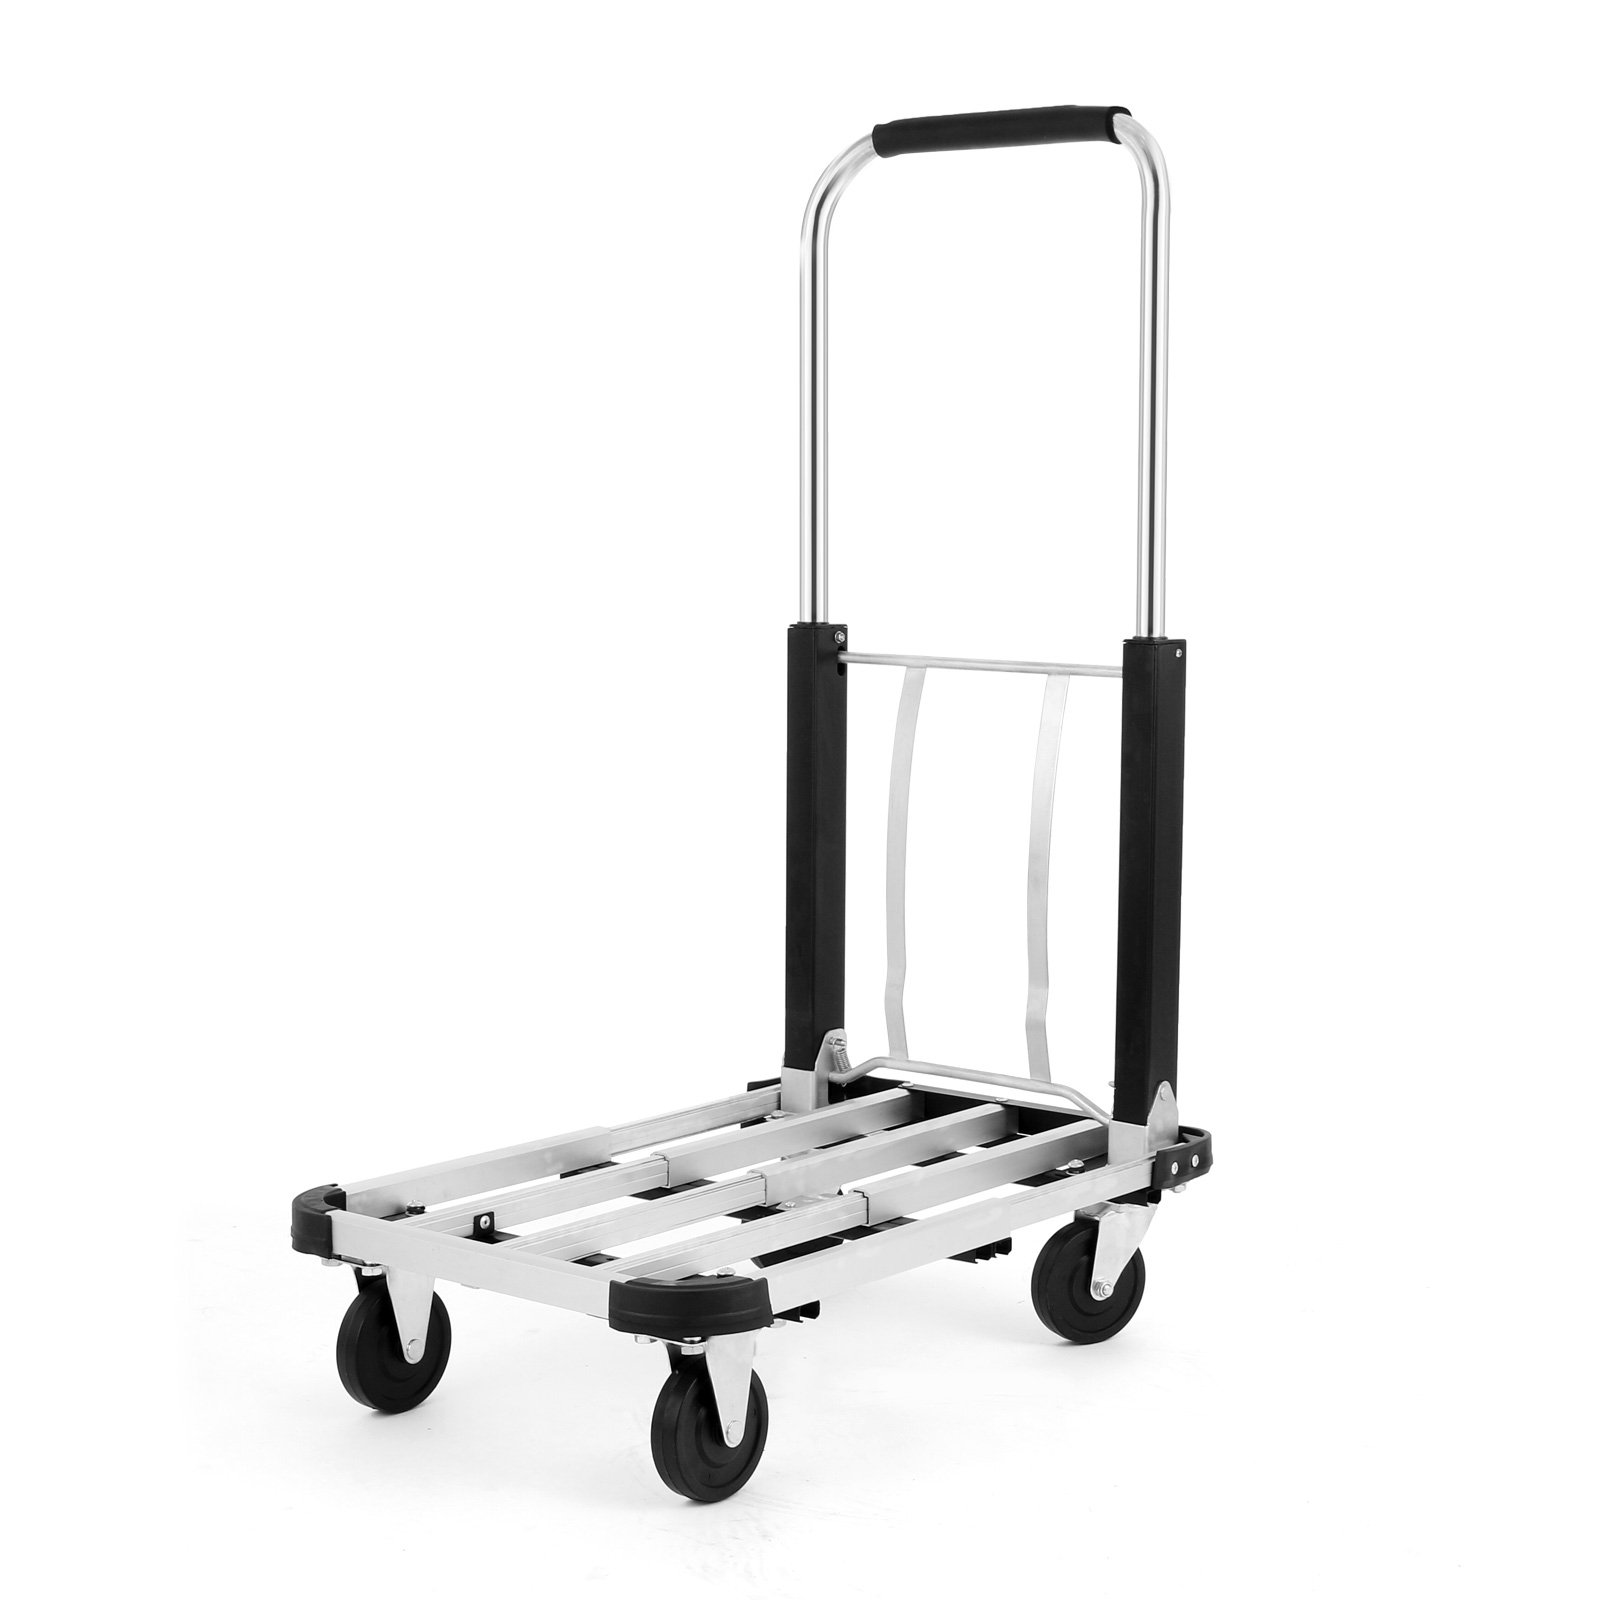 TOTOOL 330Lbs Folding Platform Truck Heavy Duty Platform Truck Cart Telescopic Rod Hand Truck Dolly Stainless Steel (330 LB)